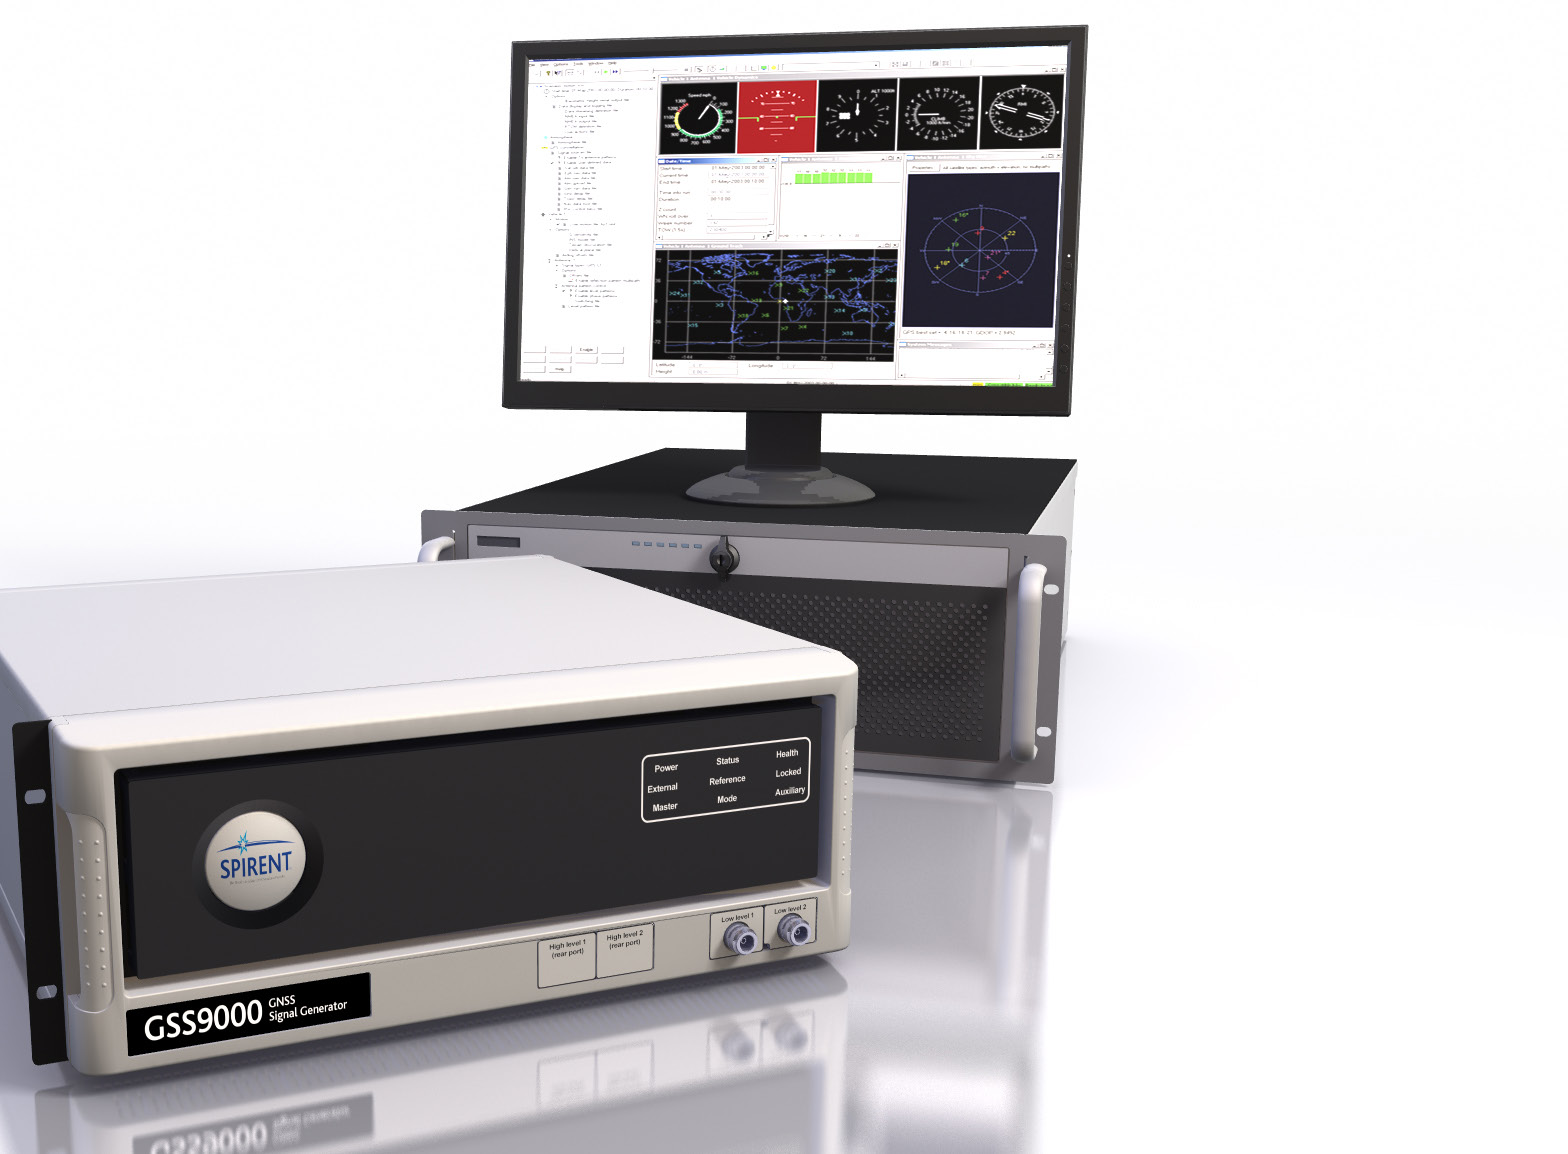 GSS9000 Multi-Frequency, Multi-GNSS RF Constellation Simulator